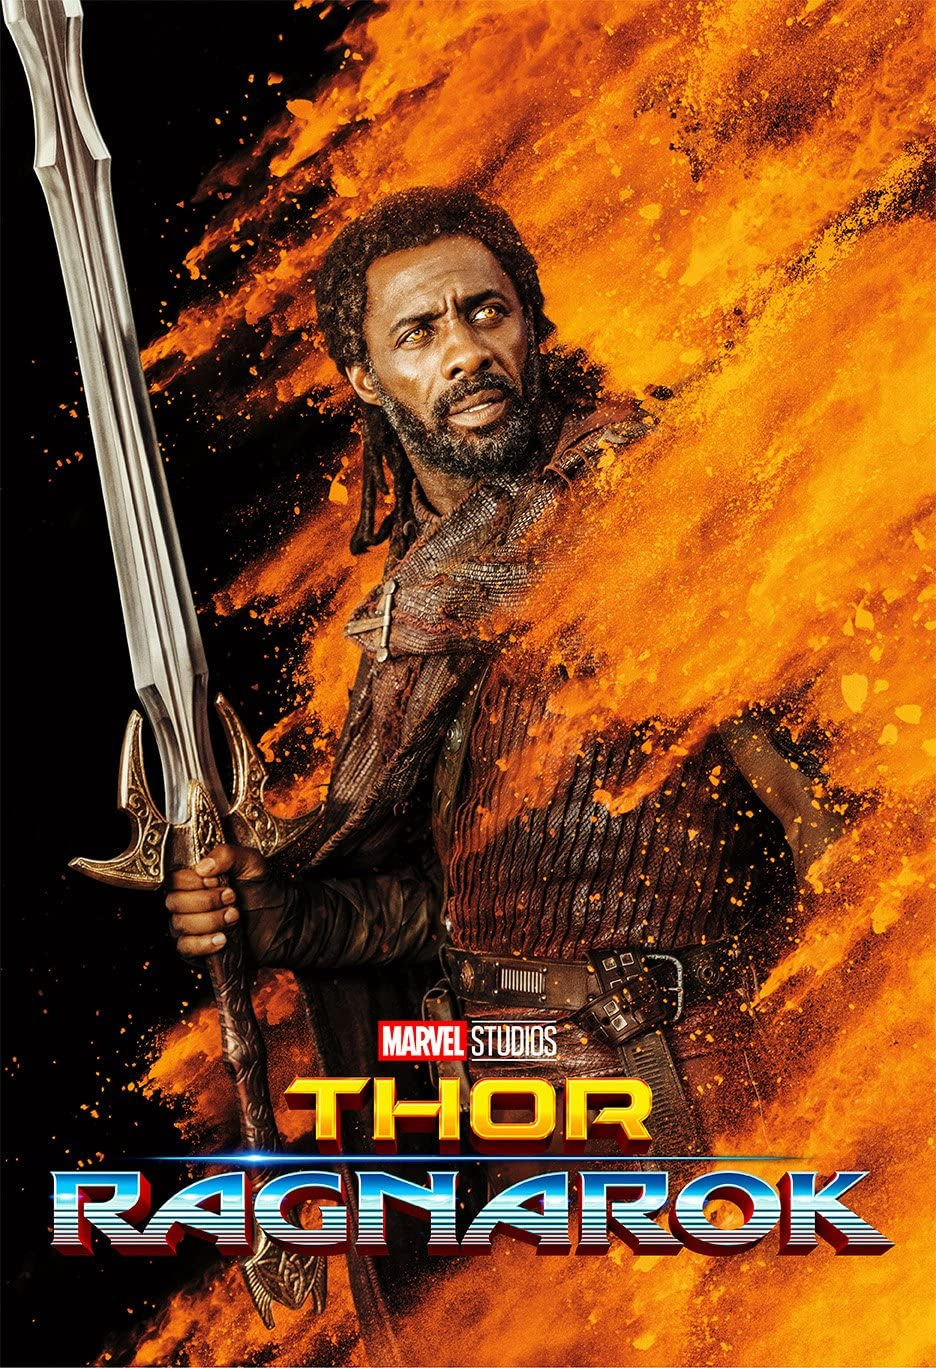 Movie Poster Thor 3 : Ragnarok (2017) - Heimdall - 13 in x 19 in Flyer Borderless + Free 1 Tile Magnet